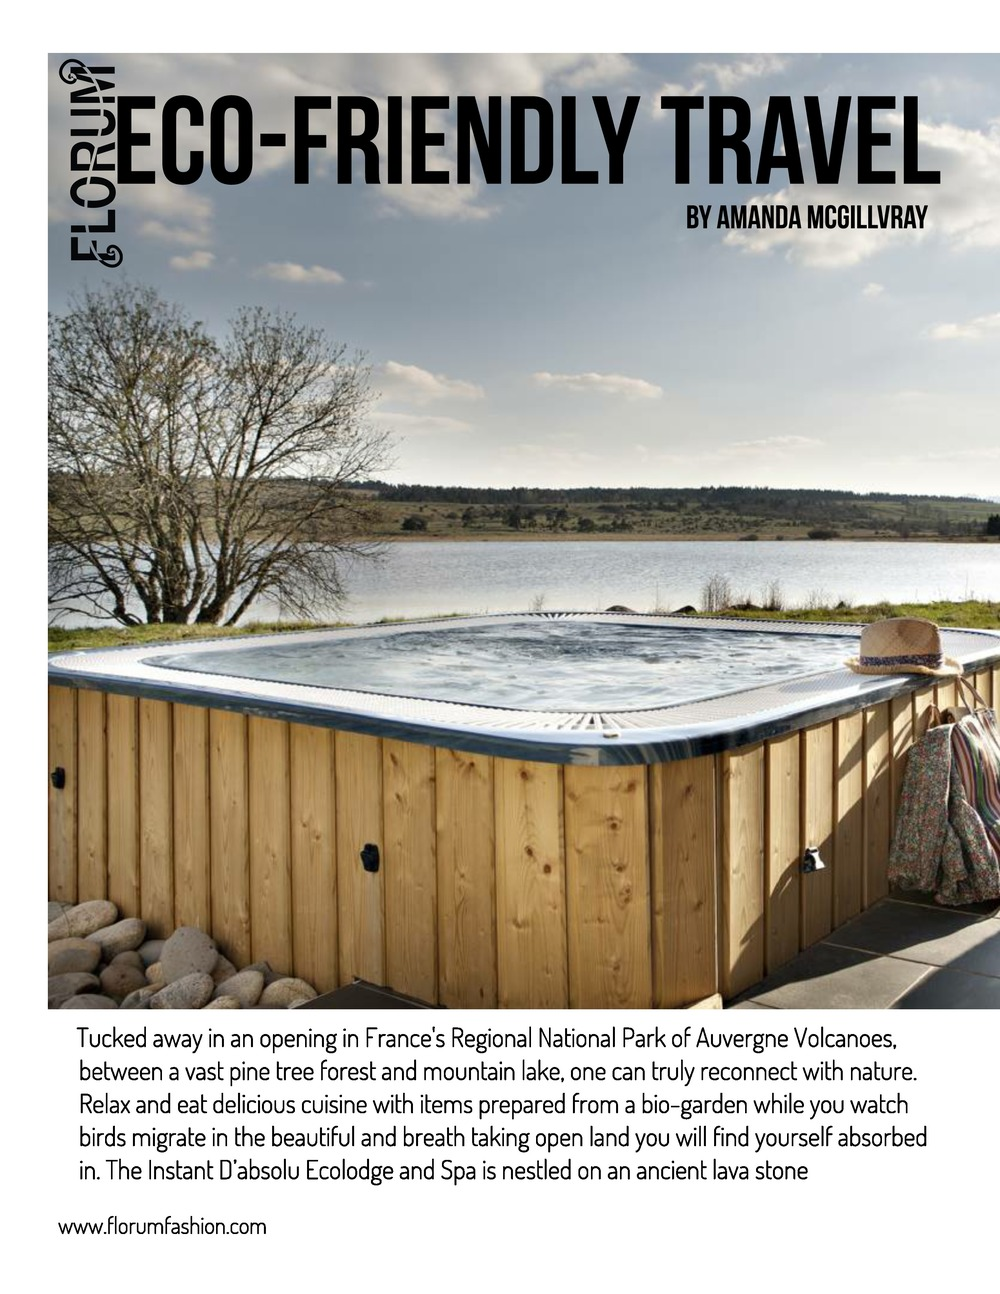 Instant D'Absolu Ecolodge and Spa is located in France's Regional Park of Auvergne Volcanoes